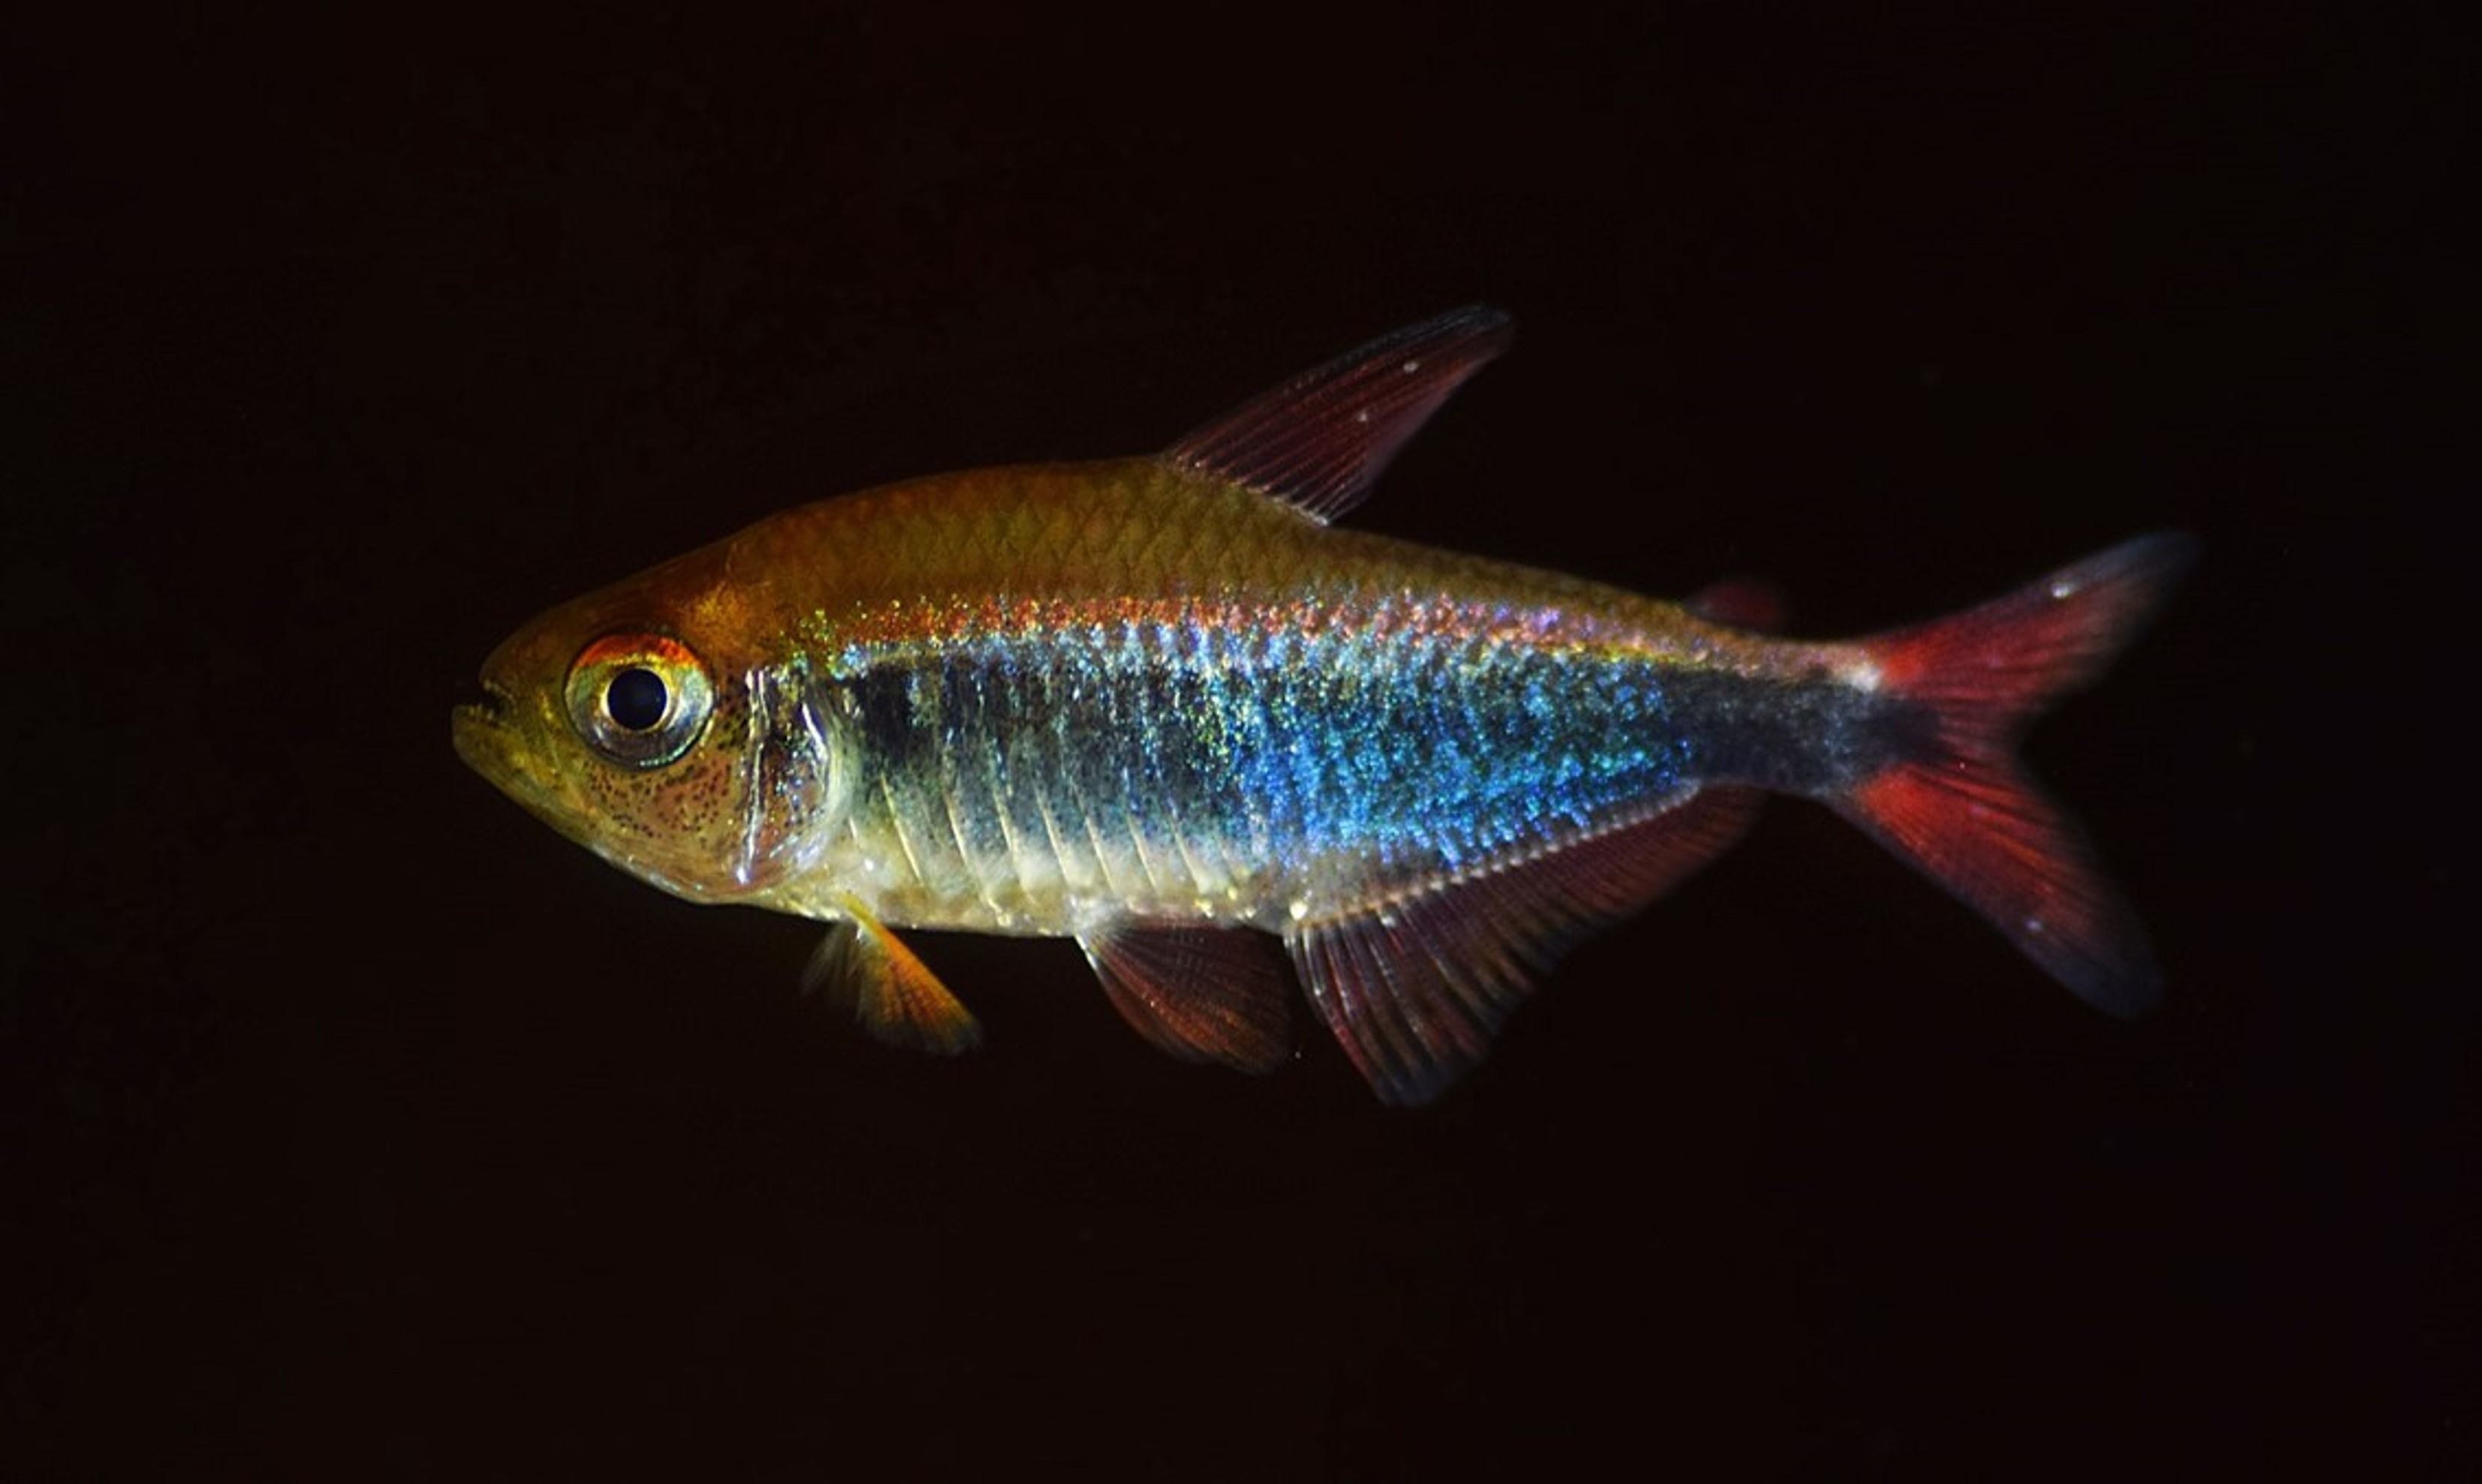 A small, iridescent red and blue fish found in Peru. Researchers believe it is a red-blue Peru tetra fish but need to conduct a DNA analysis to confirm